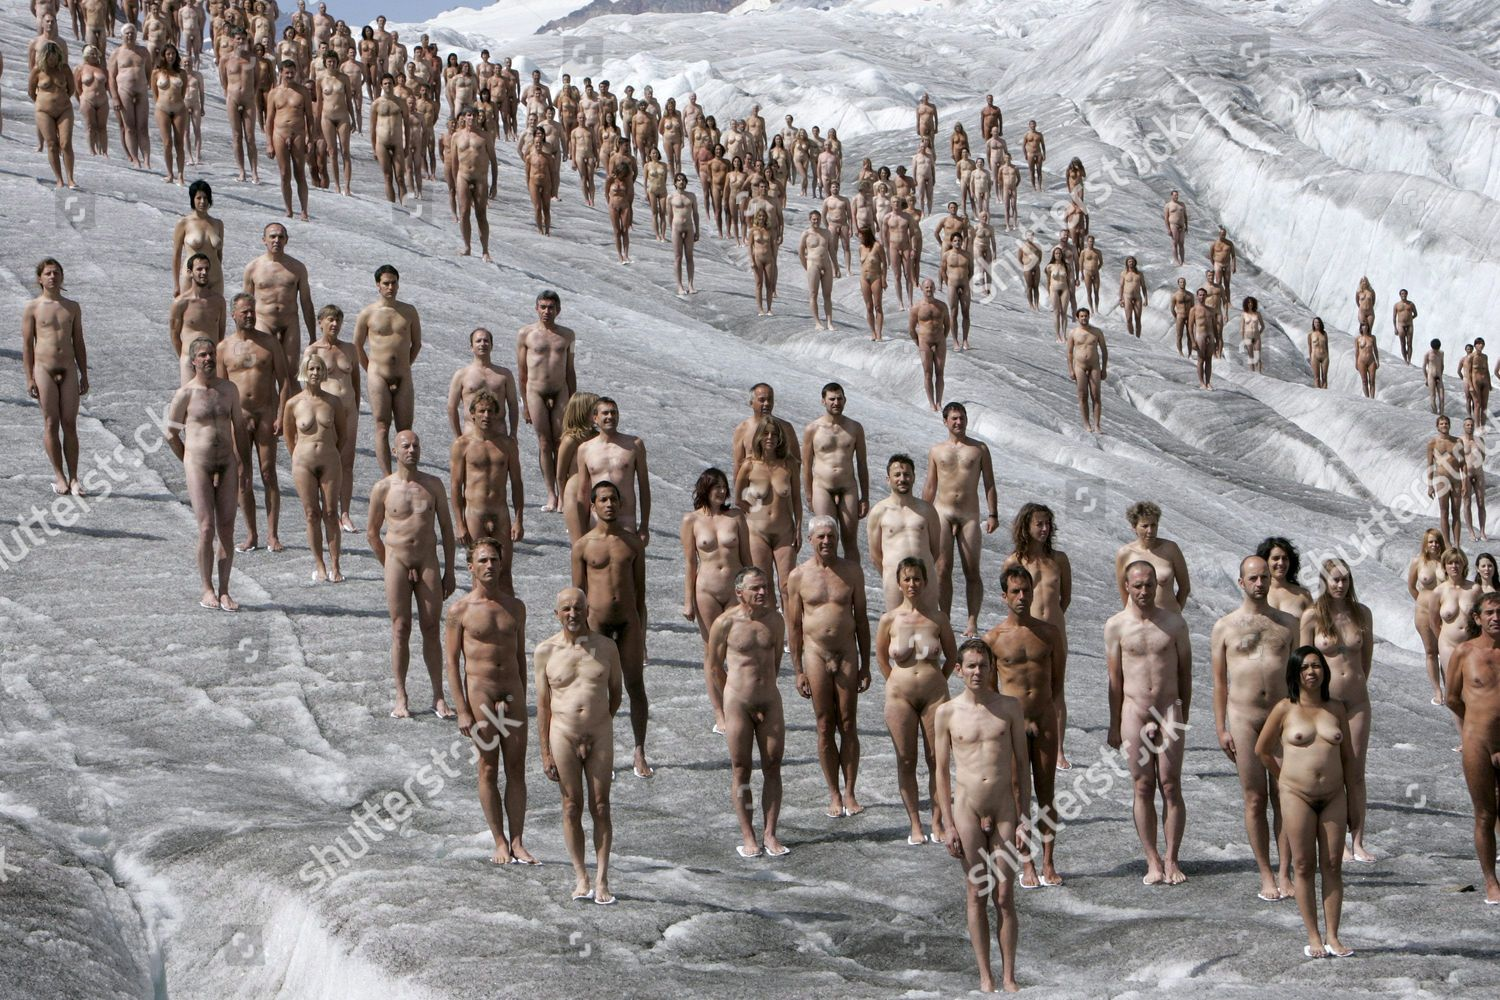 Spencer tunick naked people mistaken. You